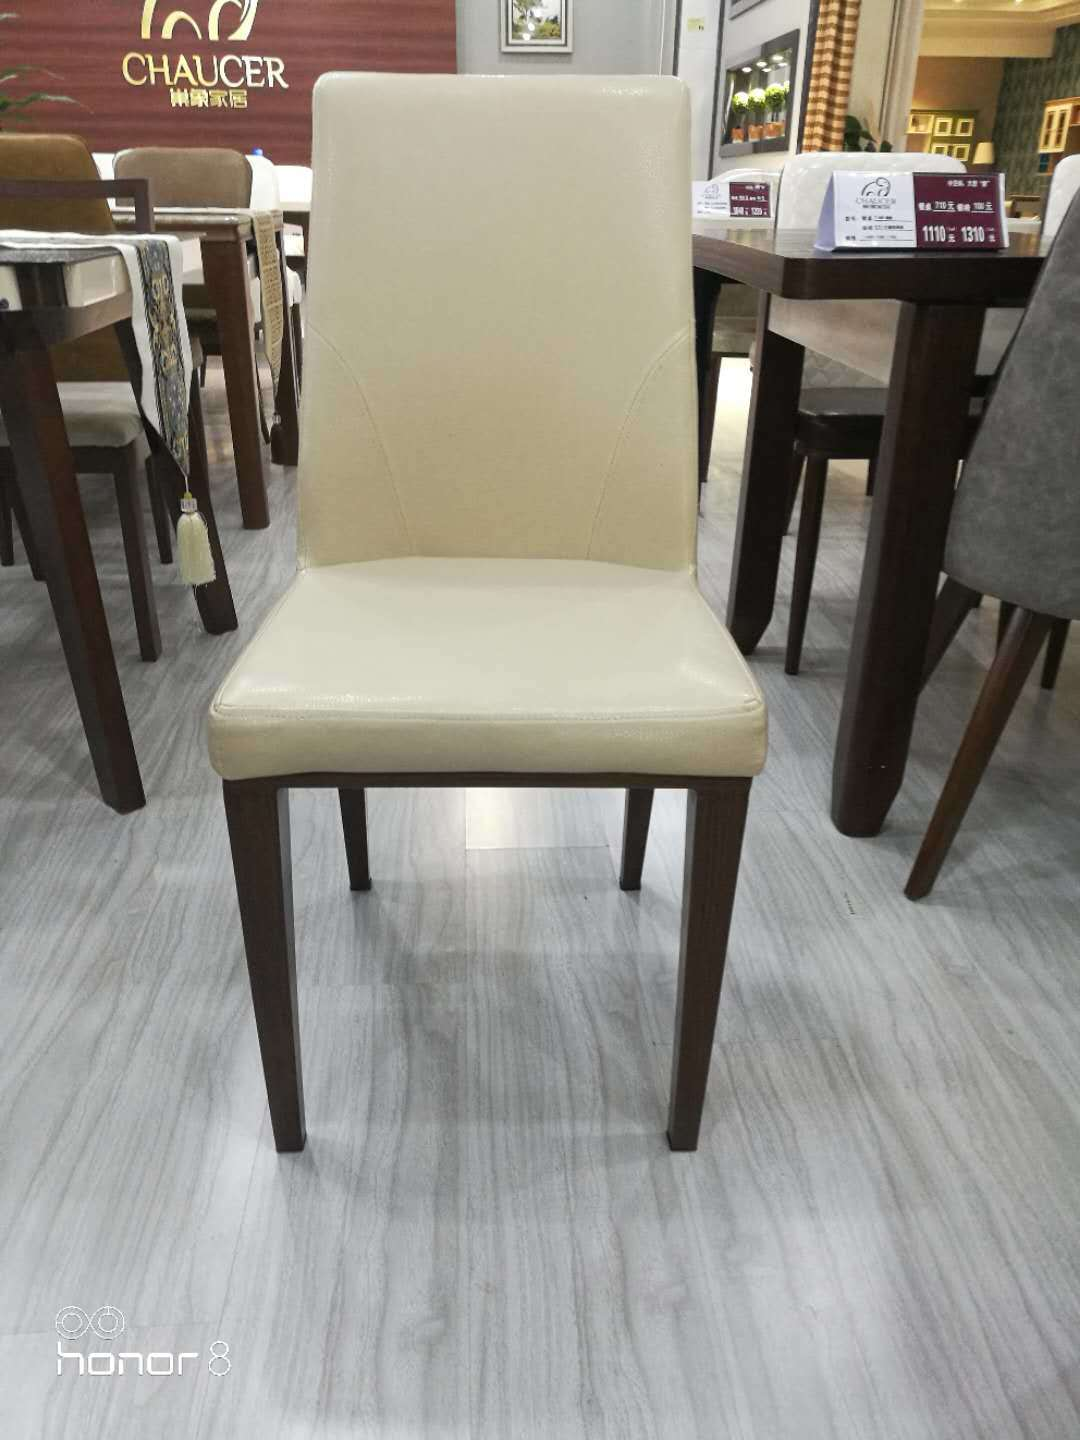 wood banquet chairs. Modern Manufacturer Wholesale Chinese Leather Dining Banquet Chair - China Chair, Hotel Furniture Wood Chairs